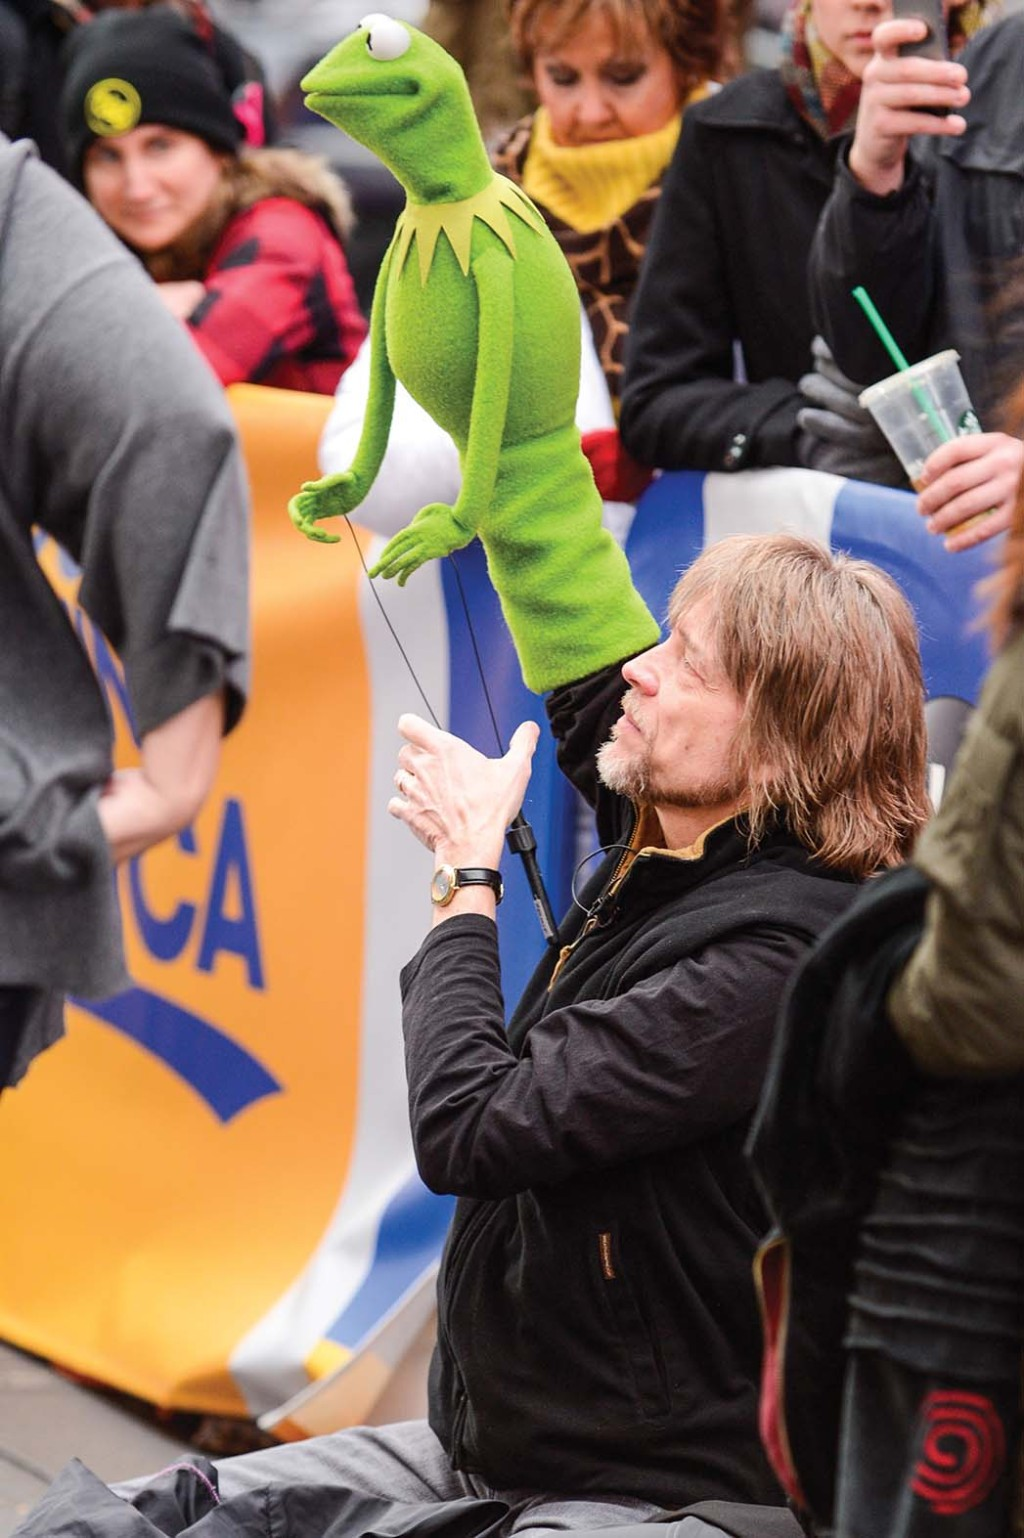 Steve Whitmire operated Kermit before he was fired in 2017.